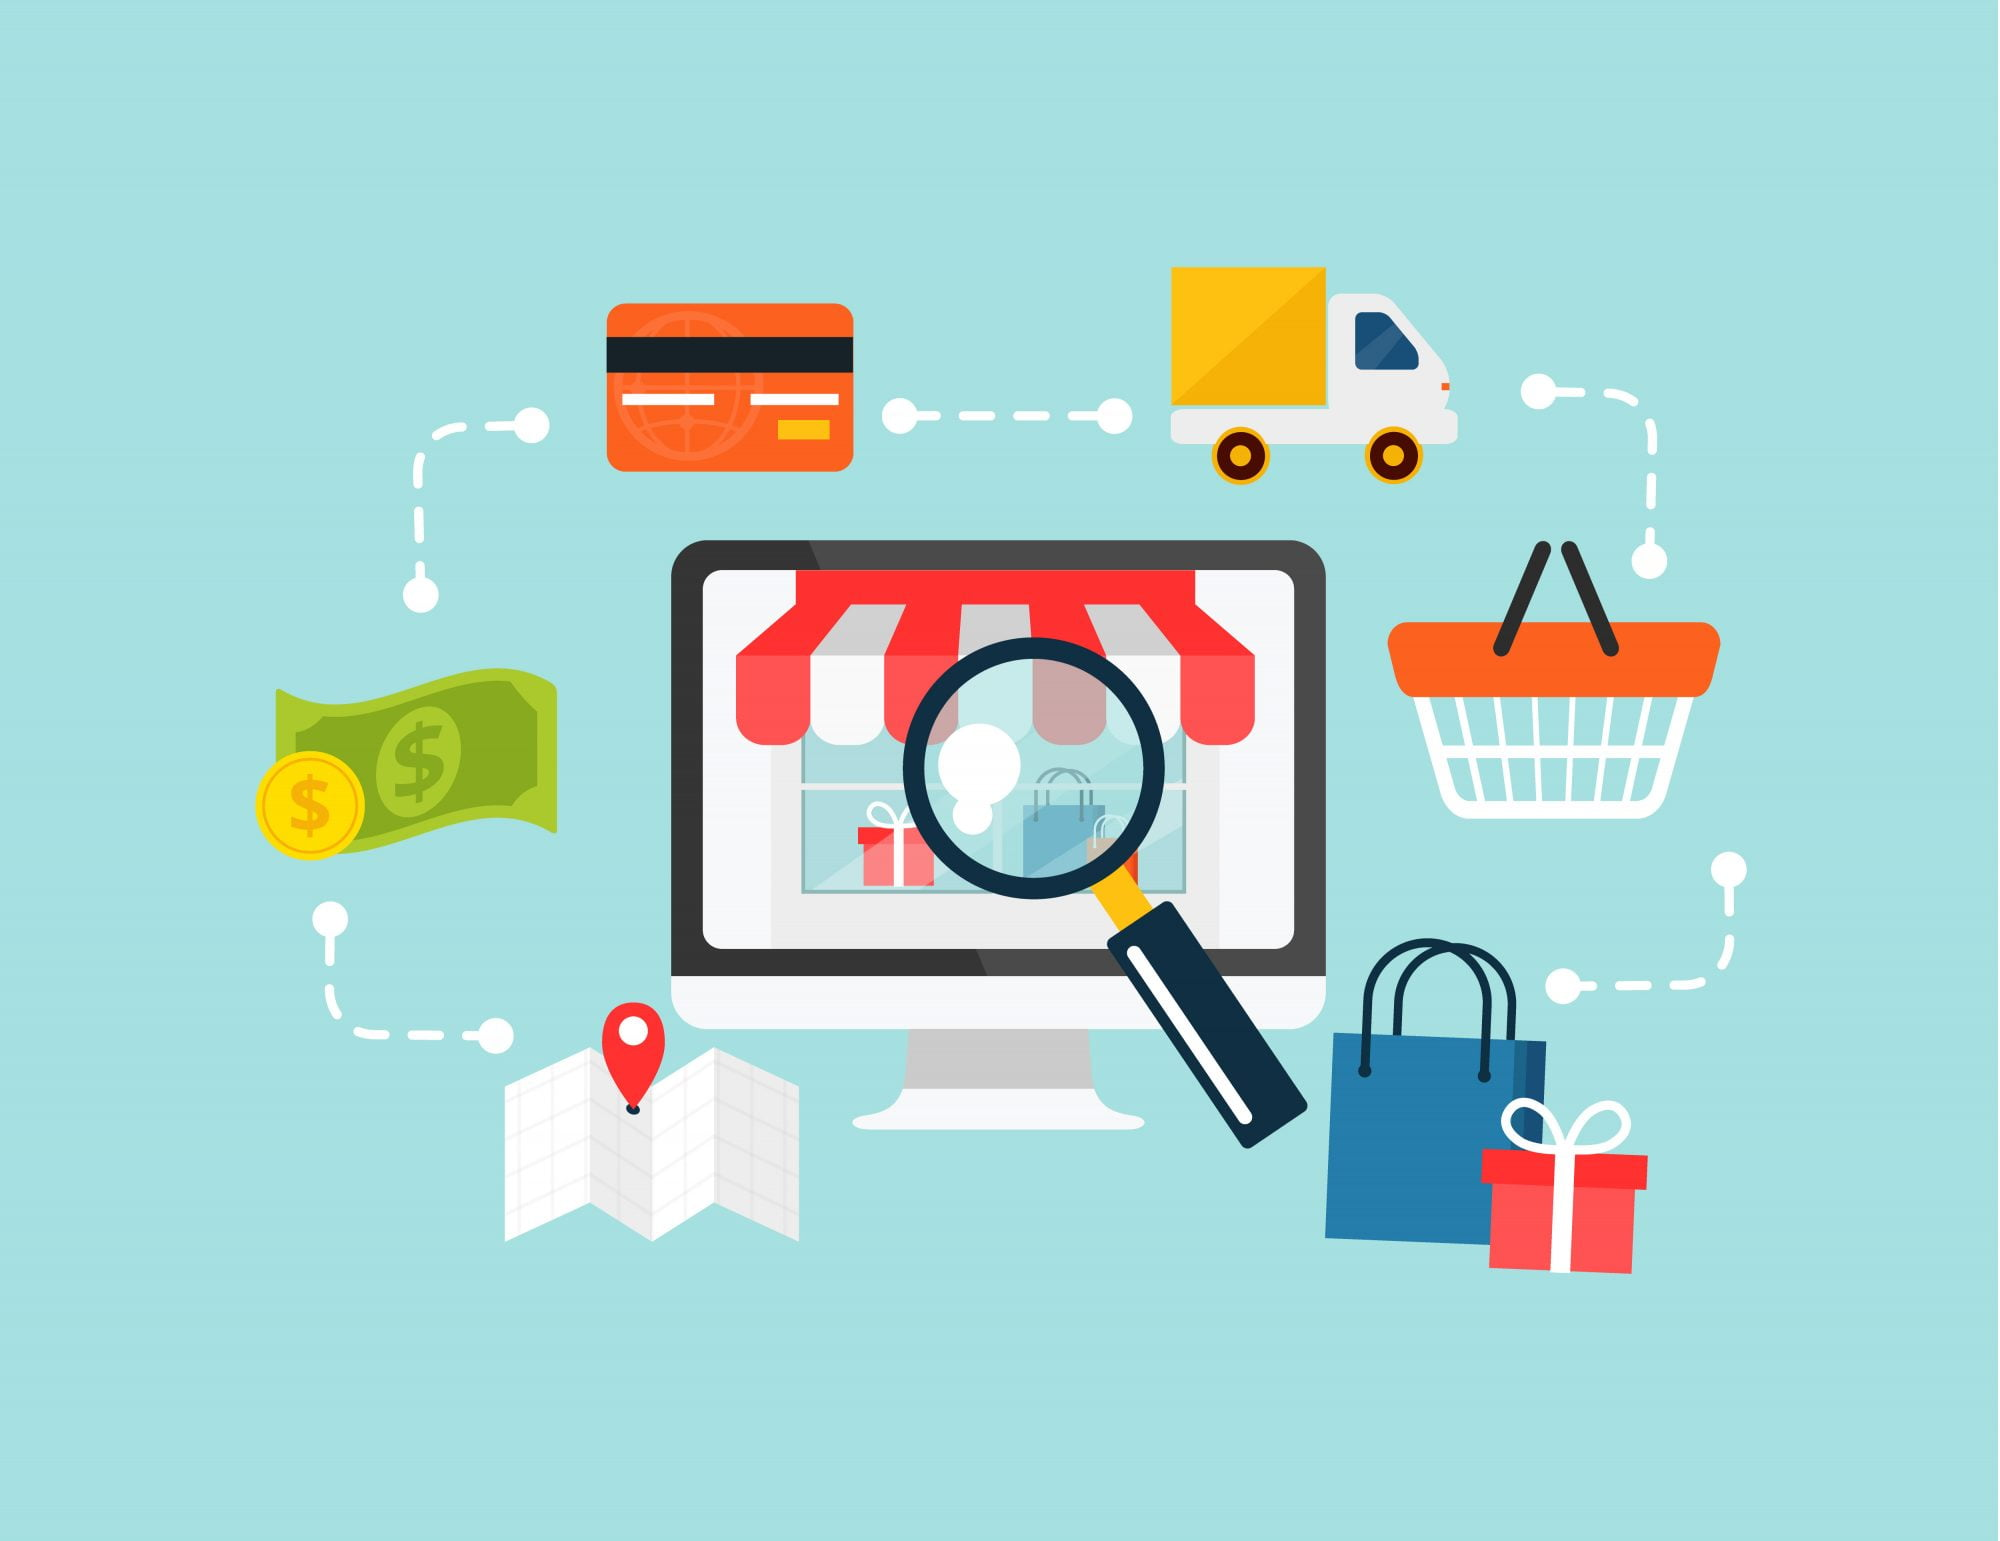 E_Commerce_Illustration_Flat_Icon-e1511145253528.jpg (2000×1541)